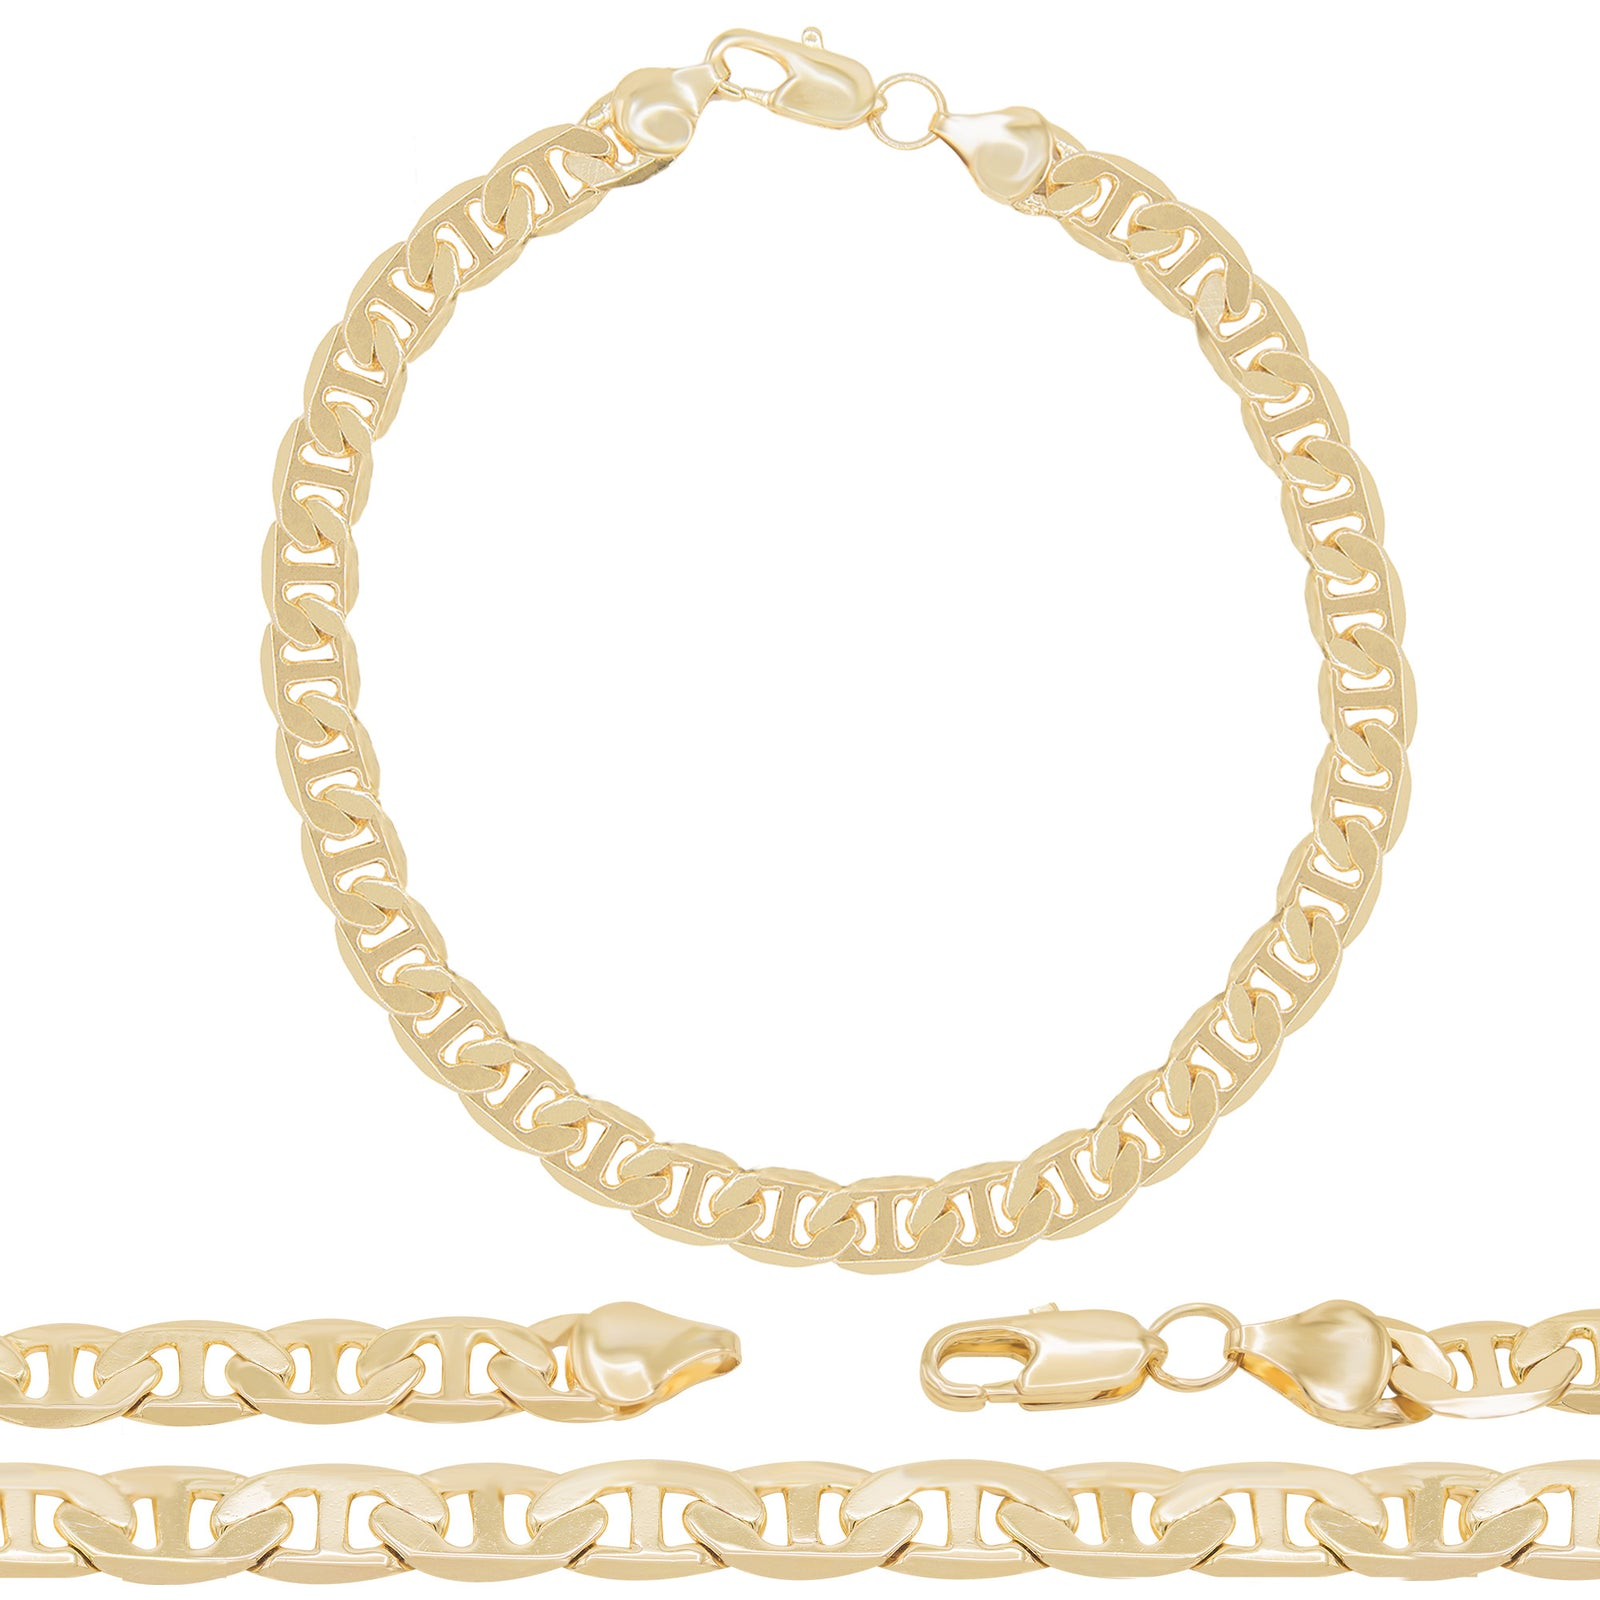 "Mariner Chain Anklet Foot Anklet Bracelet 14K Gold Filled Fashion Jewelry Wide 10"" Long"